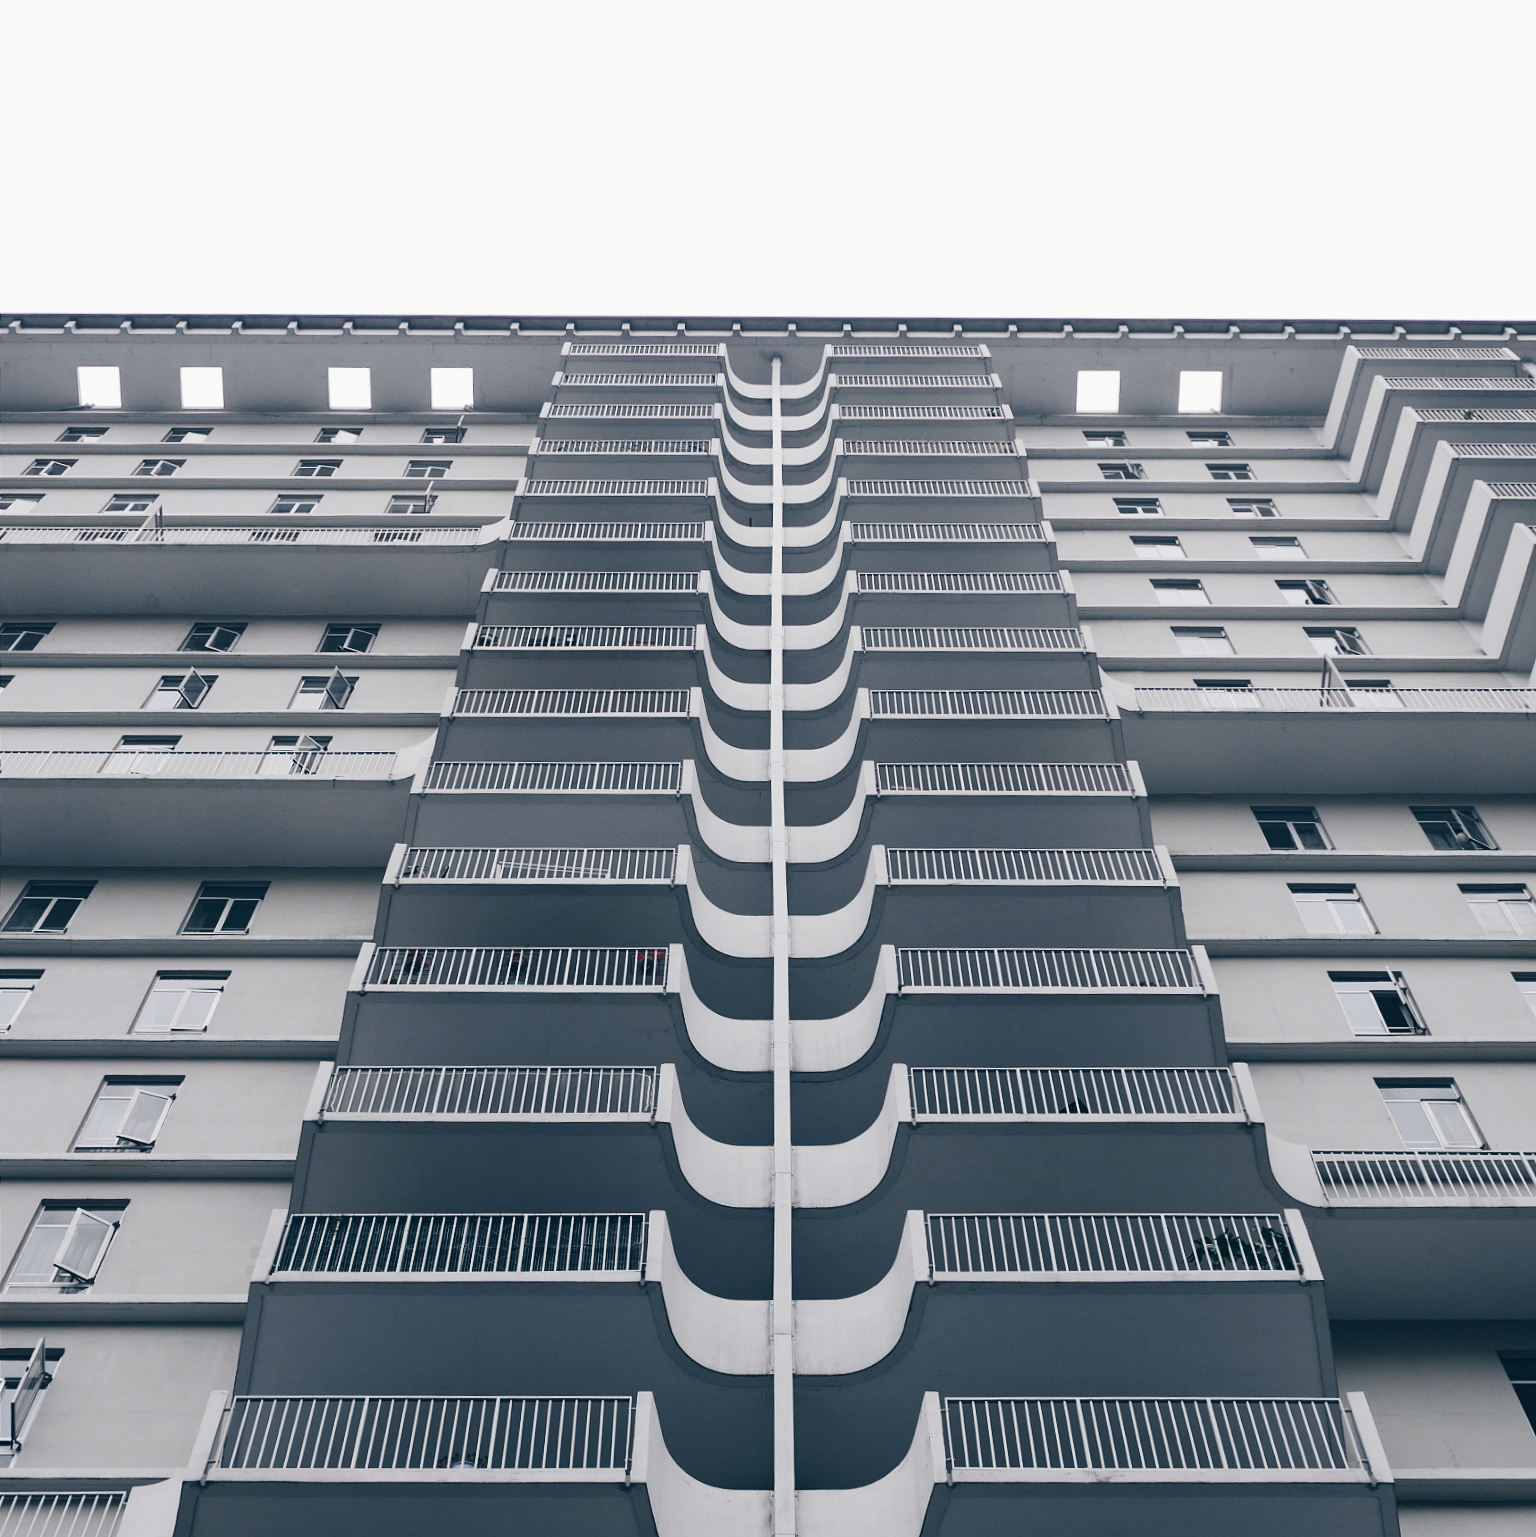 Analysis of architecture in photography